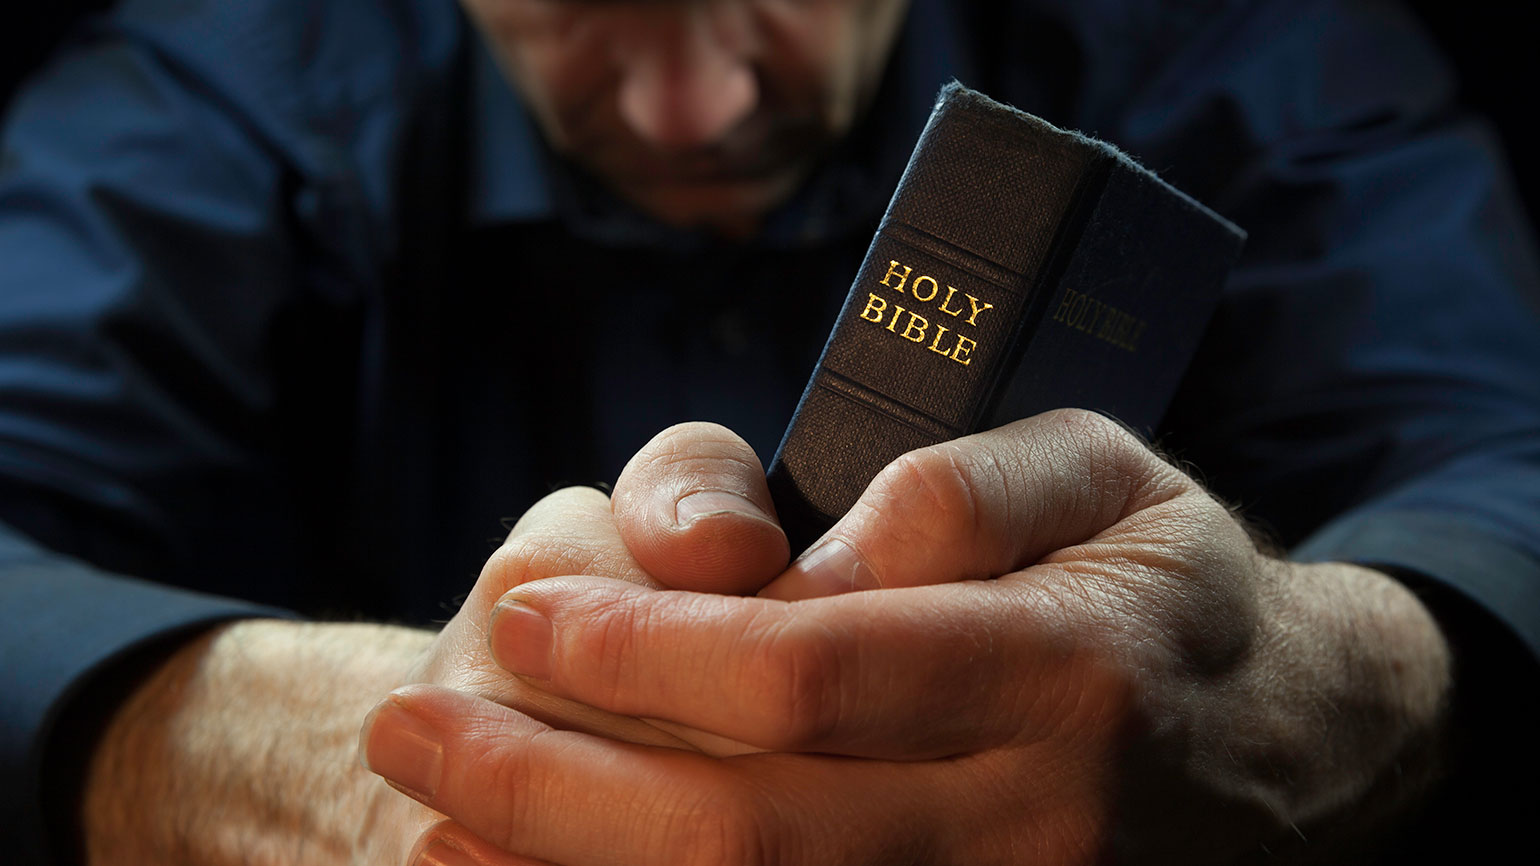 hands clasped in prayer hold a Bible